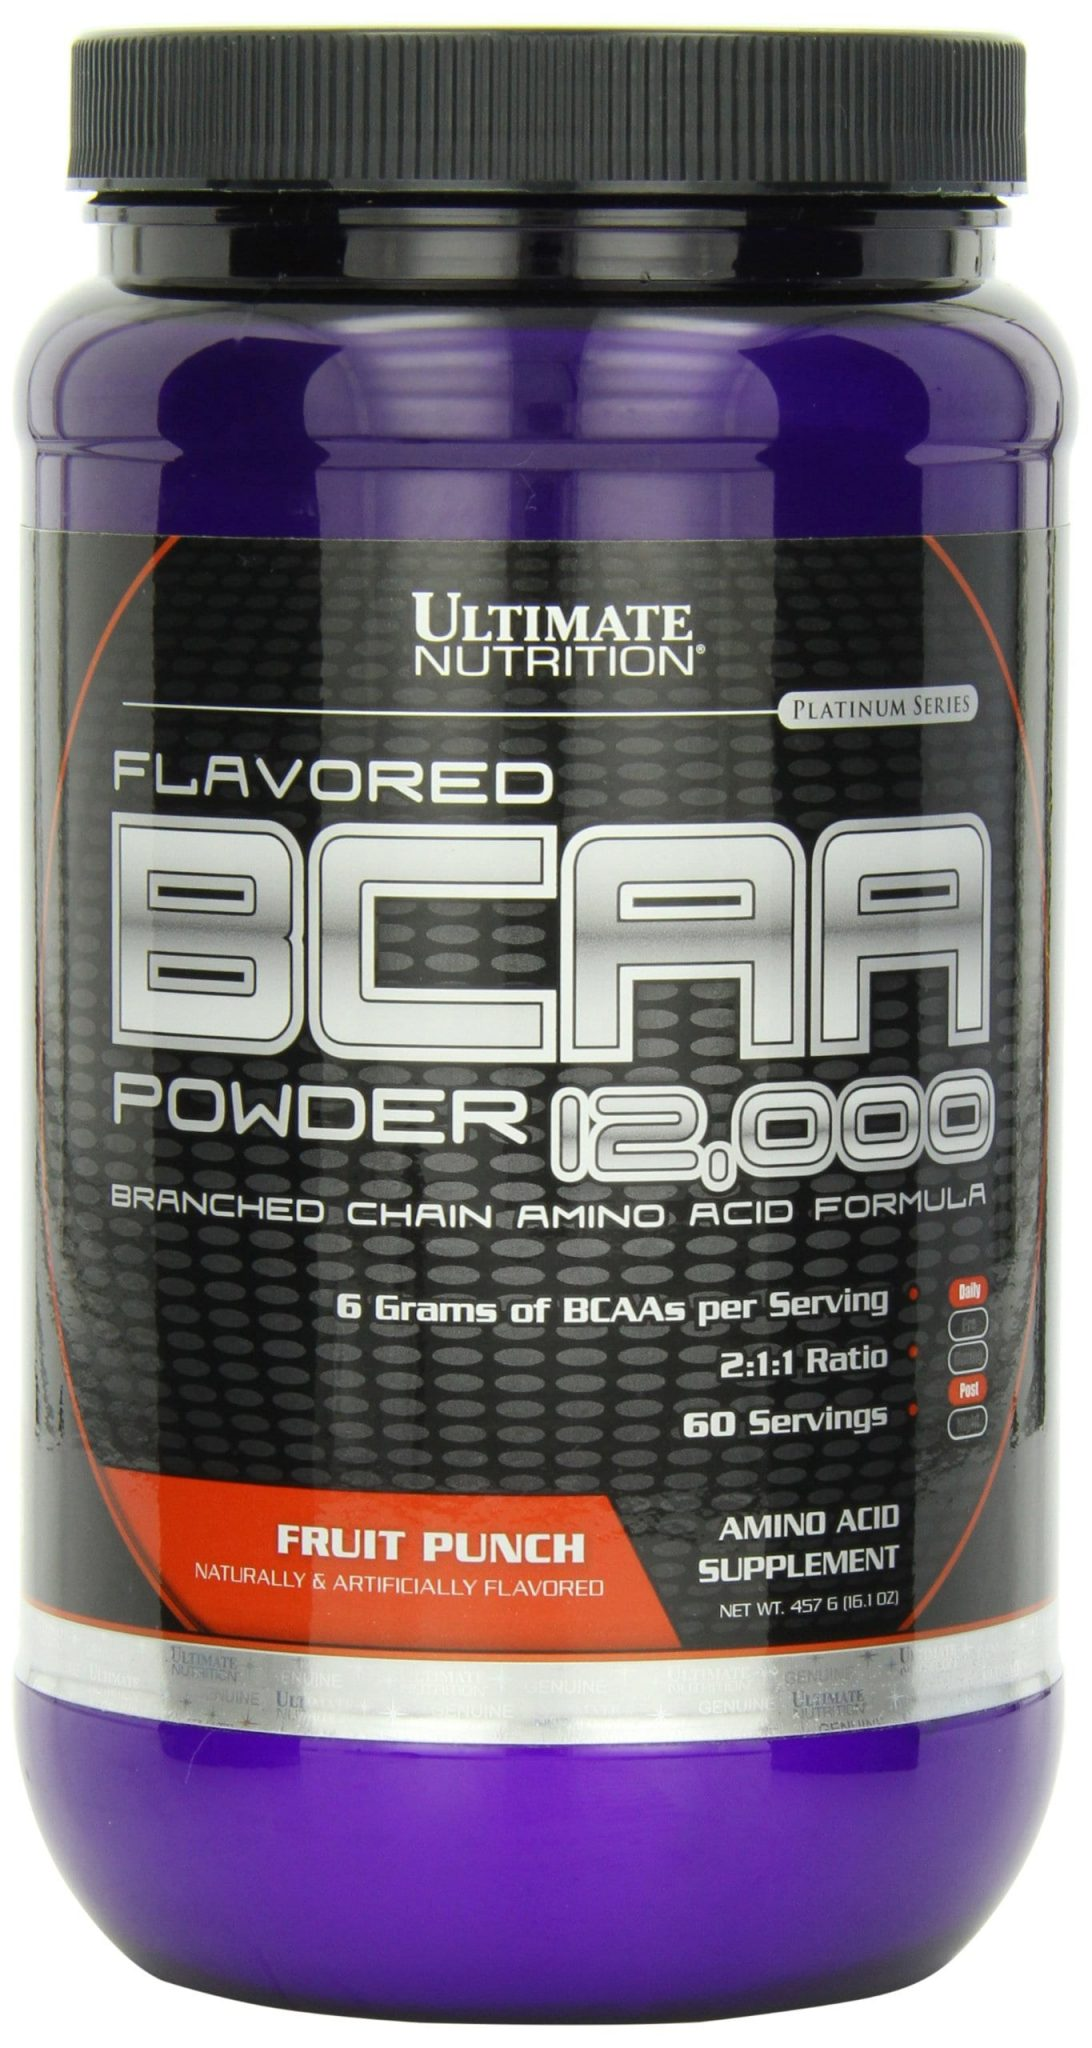 Ultimate Nutrition BCAA 12000 Review – Is It Worth The Money?